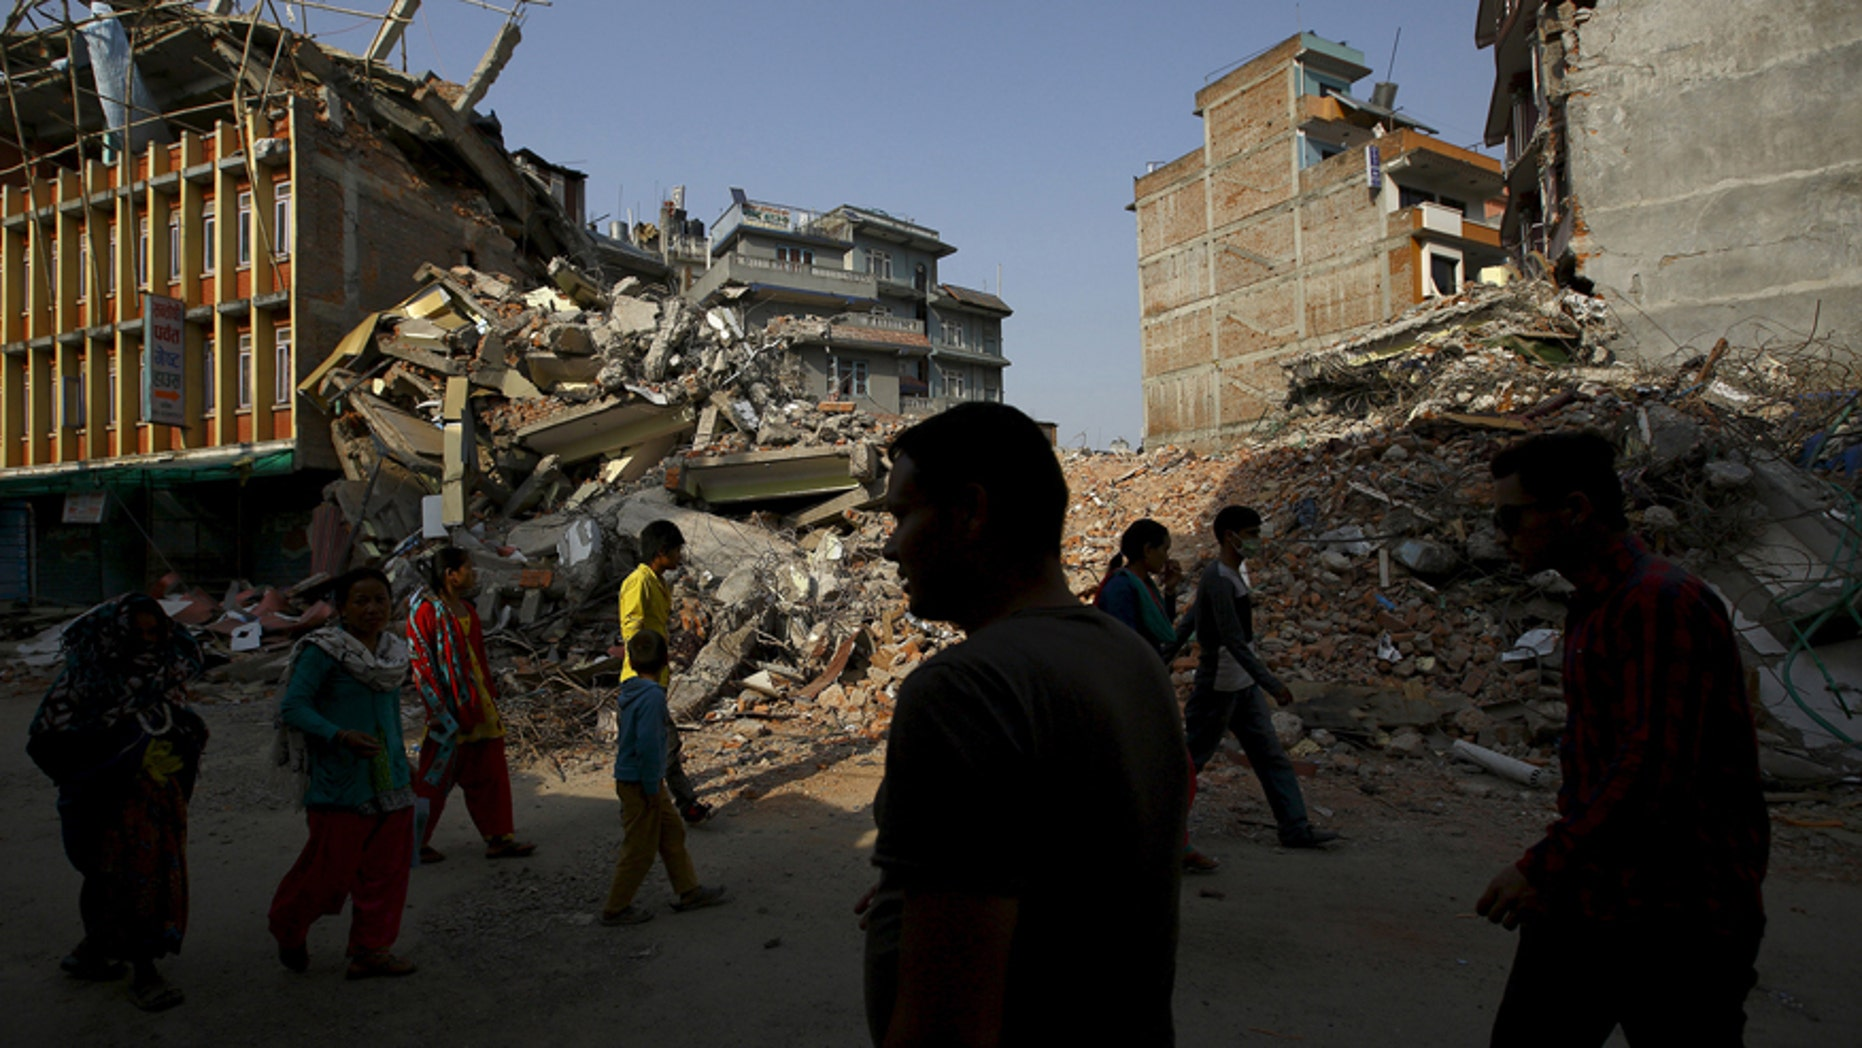 Nepalese people walk along a street near the debris of collapsed houses, a month after the April 25 earthquake in Kathmandu, Nepal May 25, 2015.